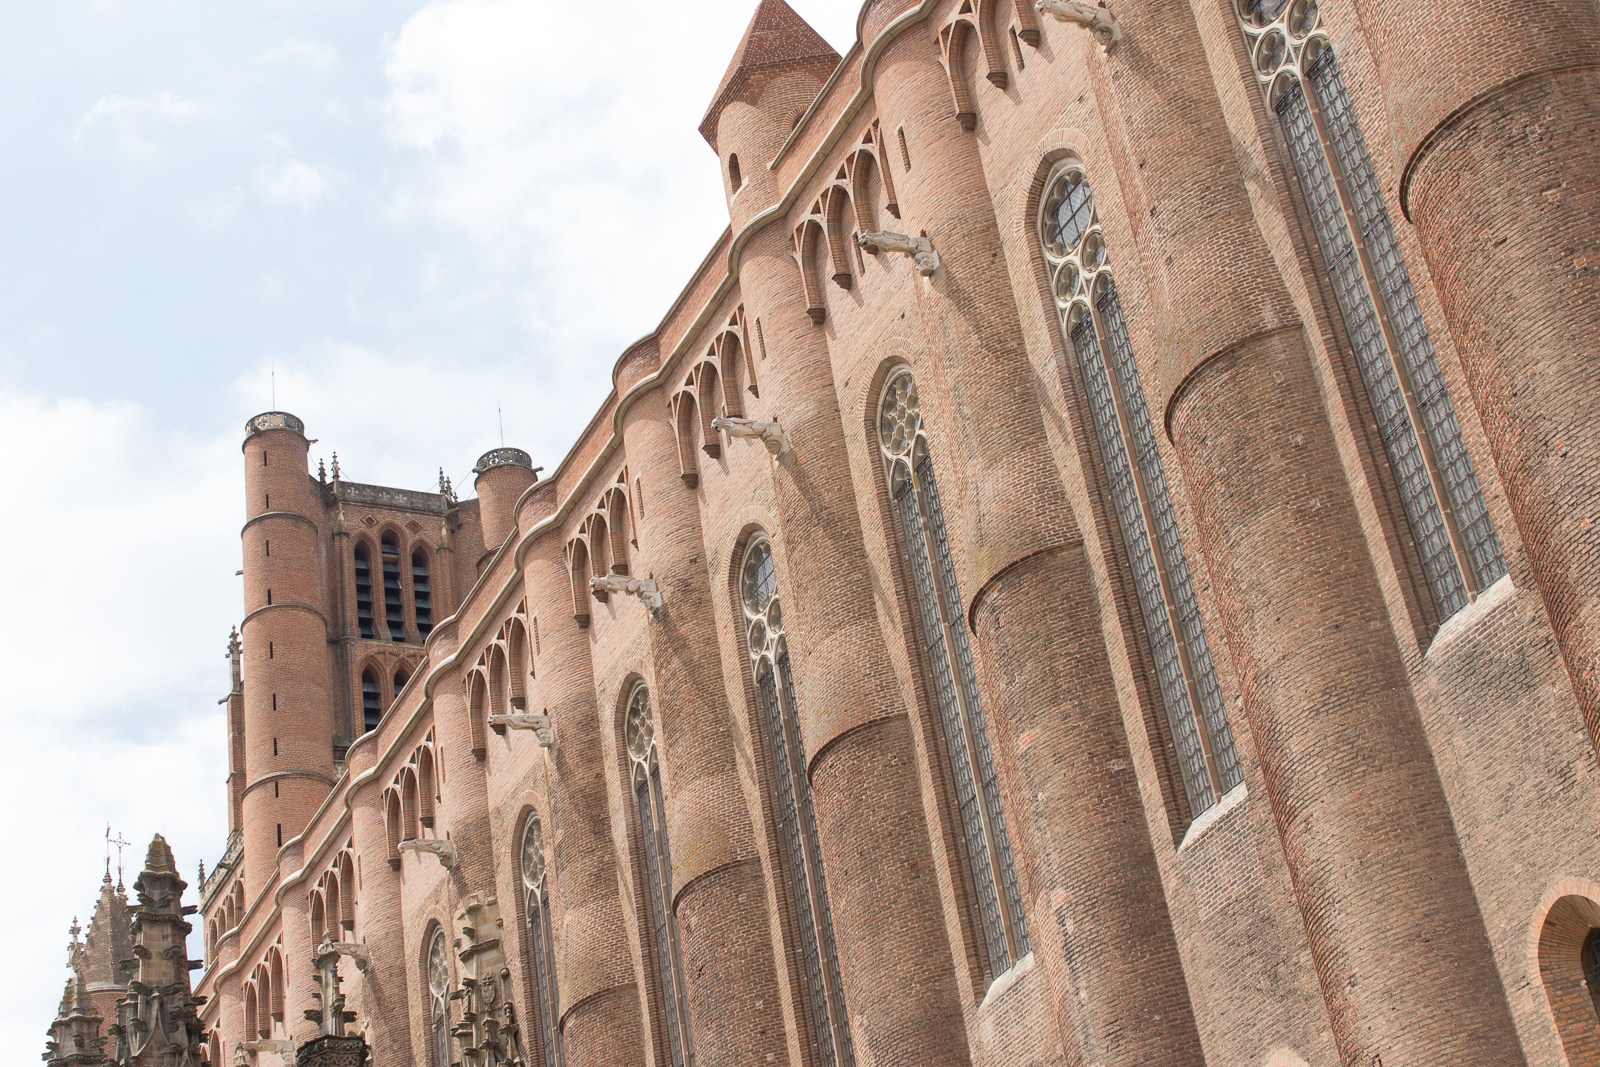 Sainte-Cécile Cathedral, Albi - France